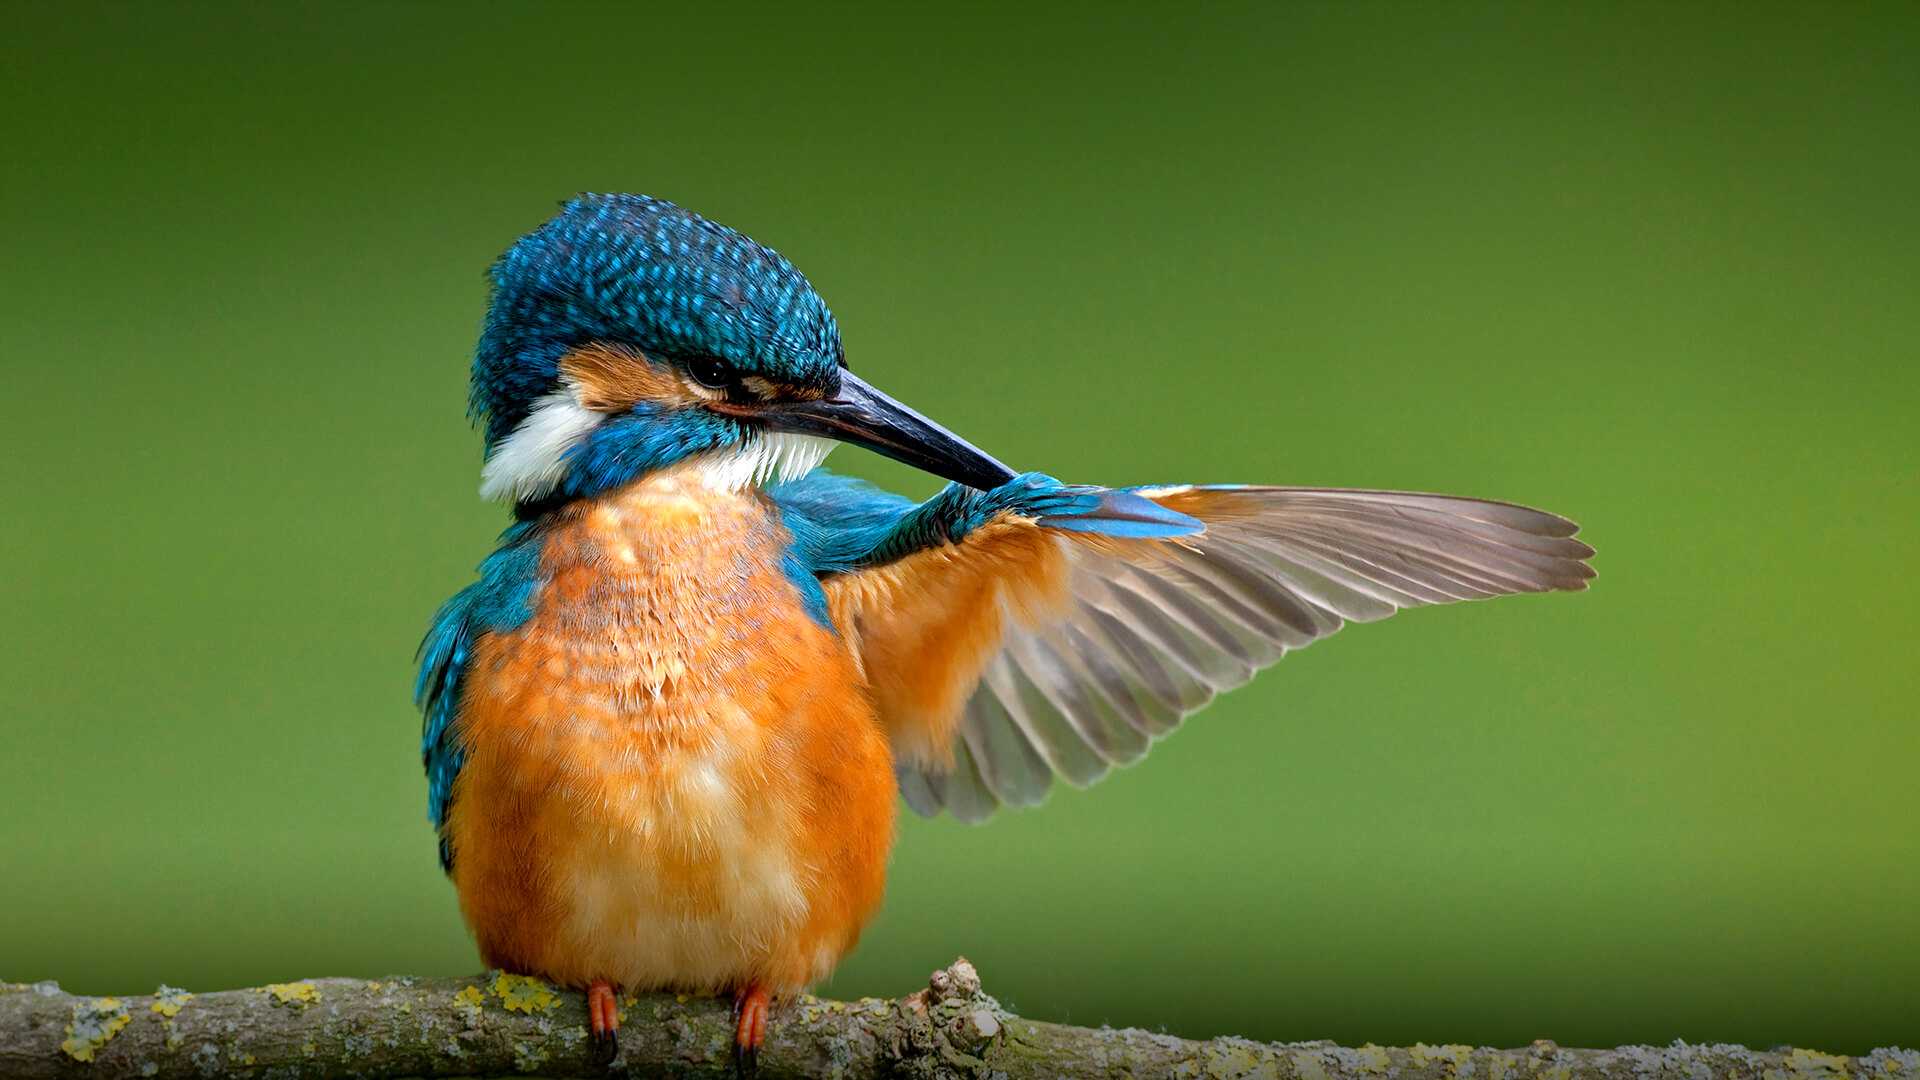 High Resolution Wallpaper | Kingfisher 1920x1080 px